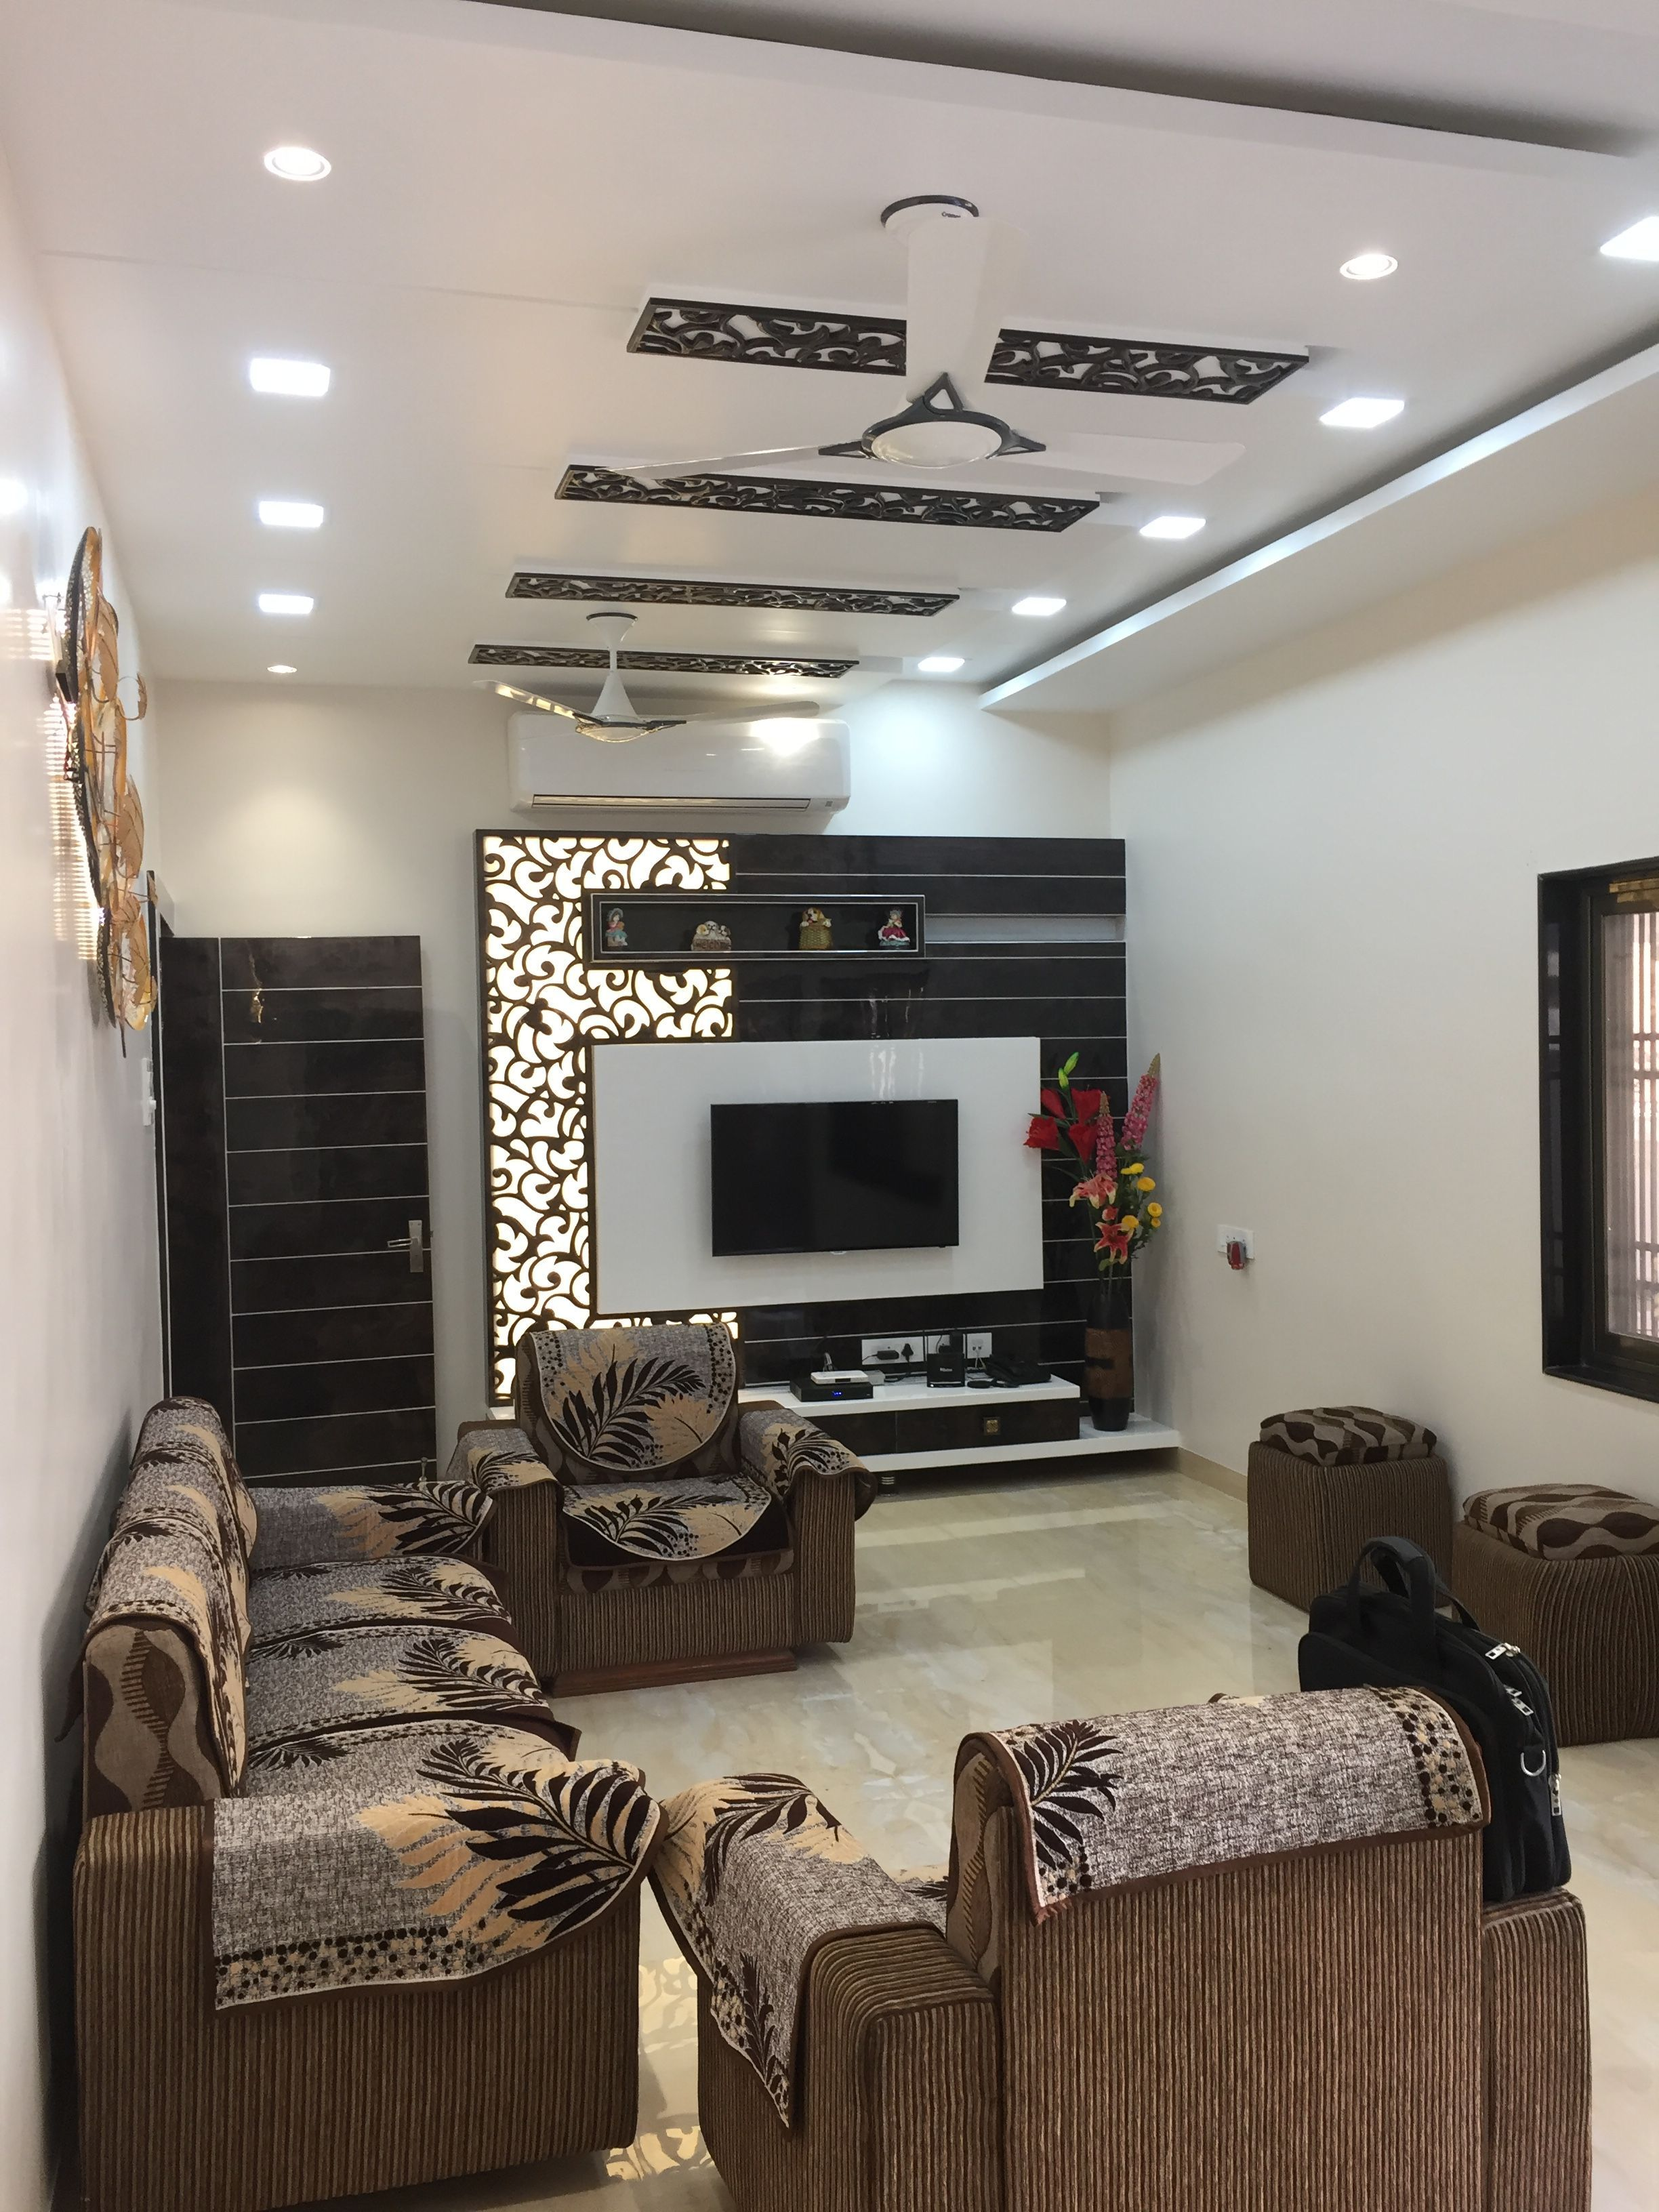 Charming Wall Designs For Living Room Lcd Tv Http Lahuhome Com